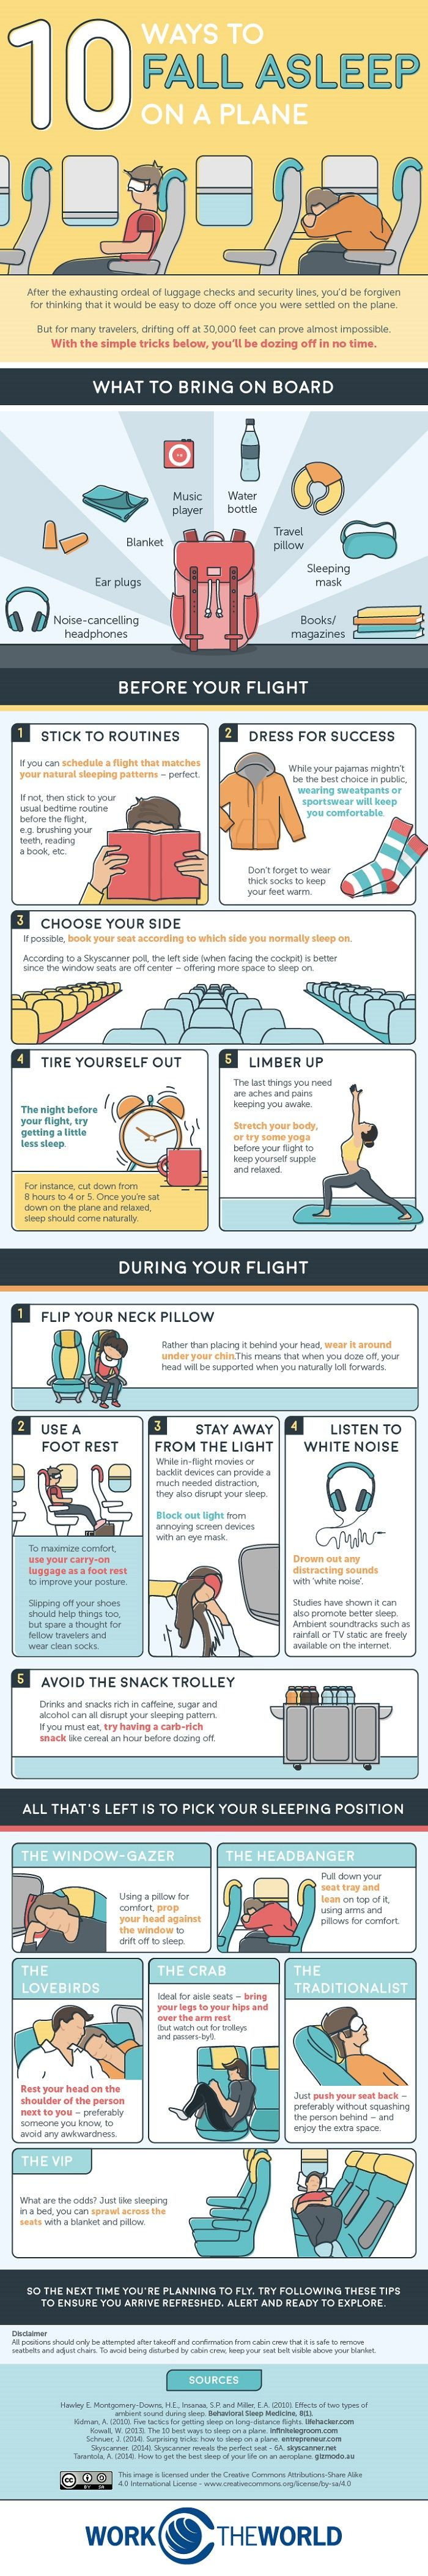 10-ways-to-fall-asleep-on-a-plane